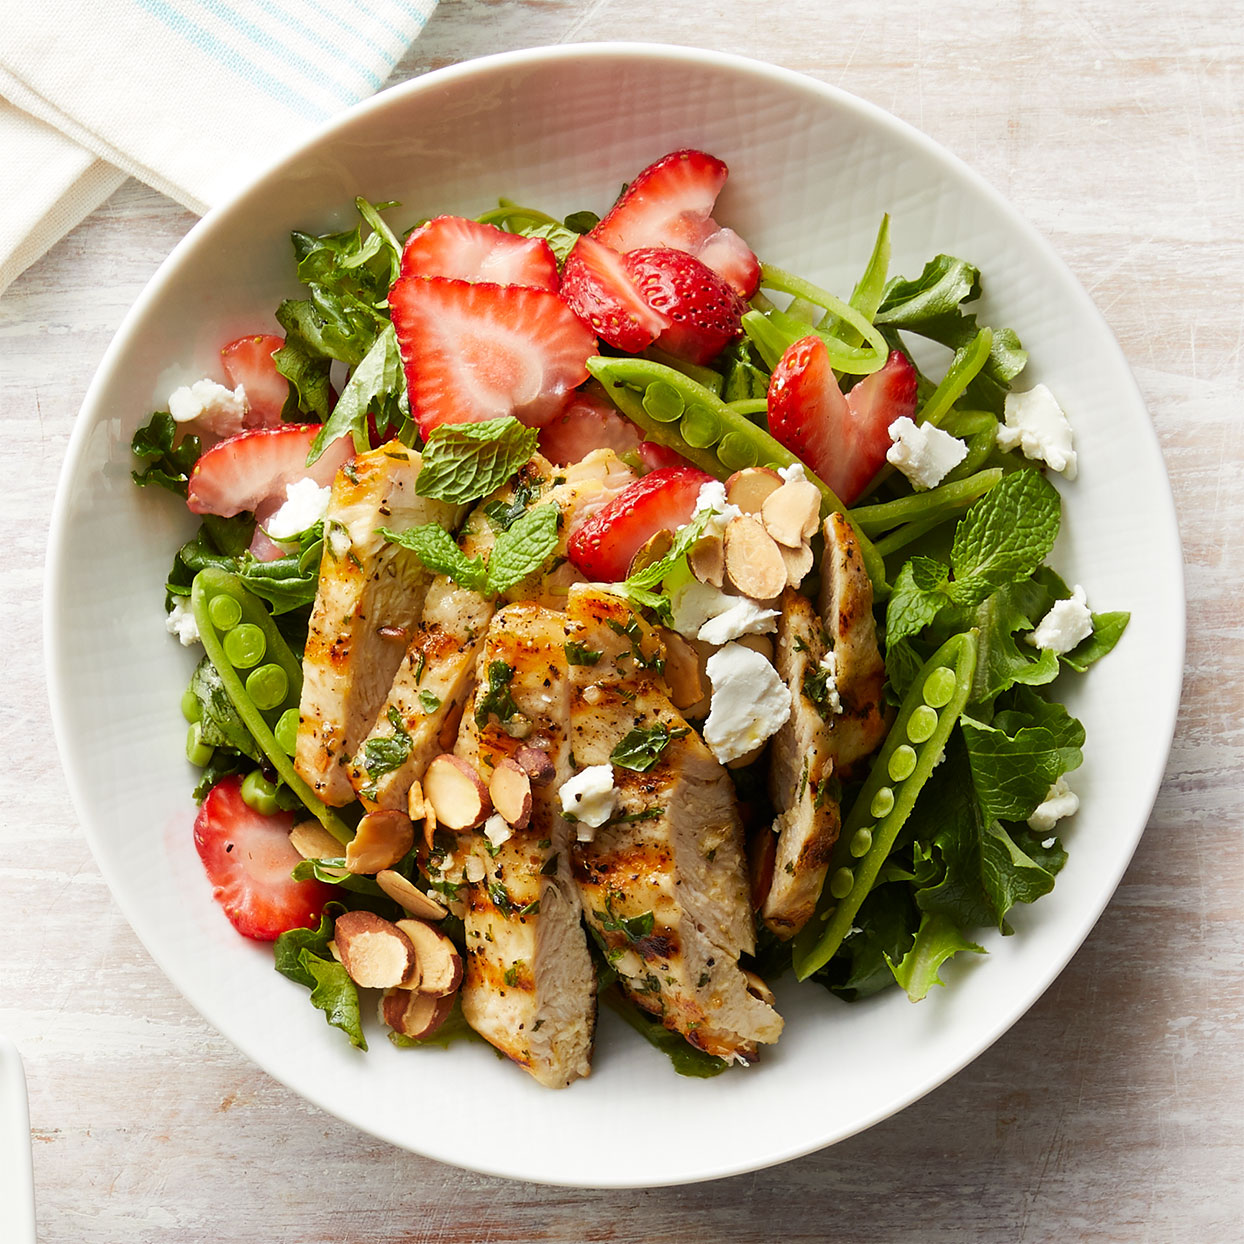 Strawberry Chicken Salad with Mint & Goat Cheese